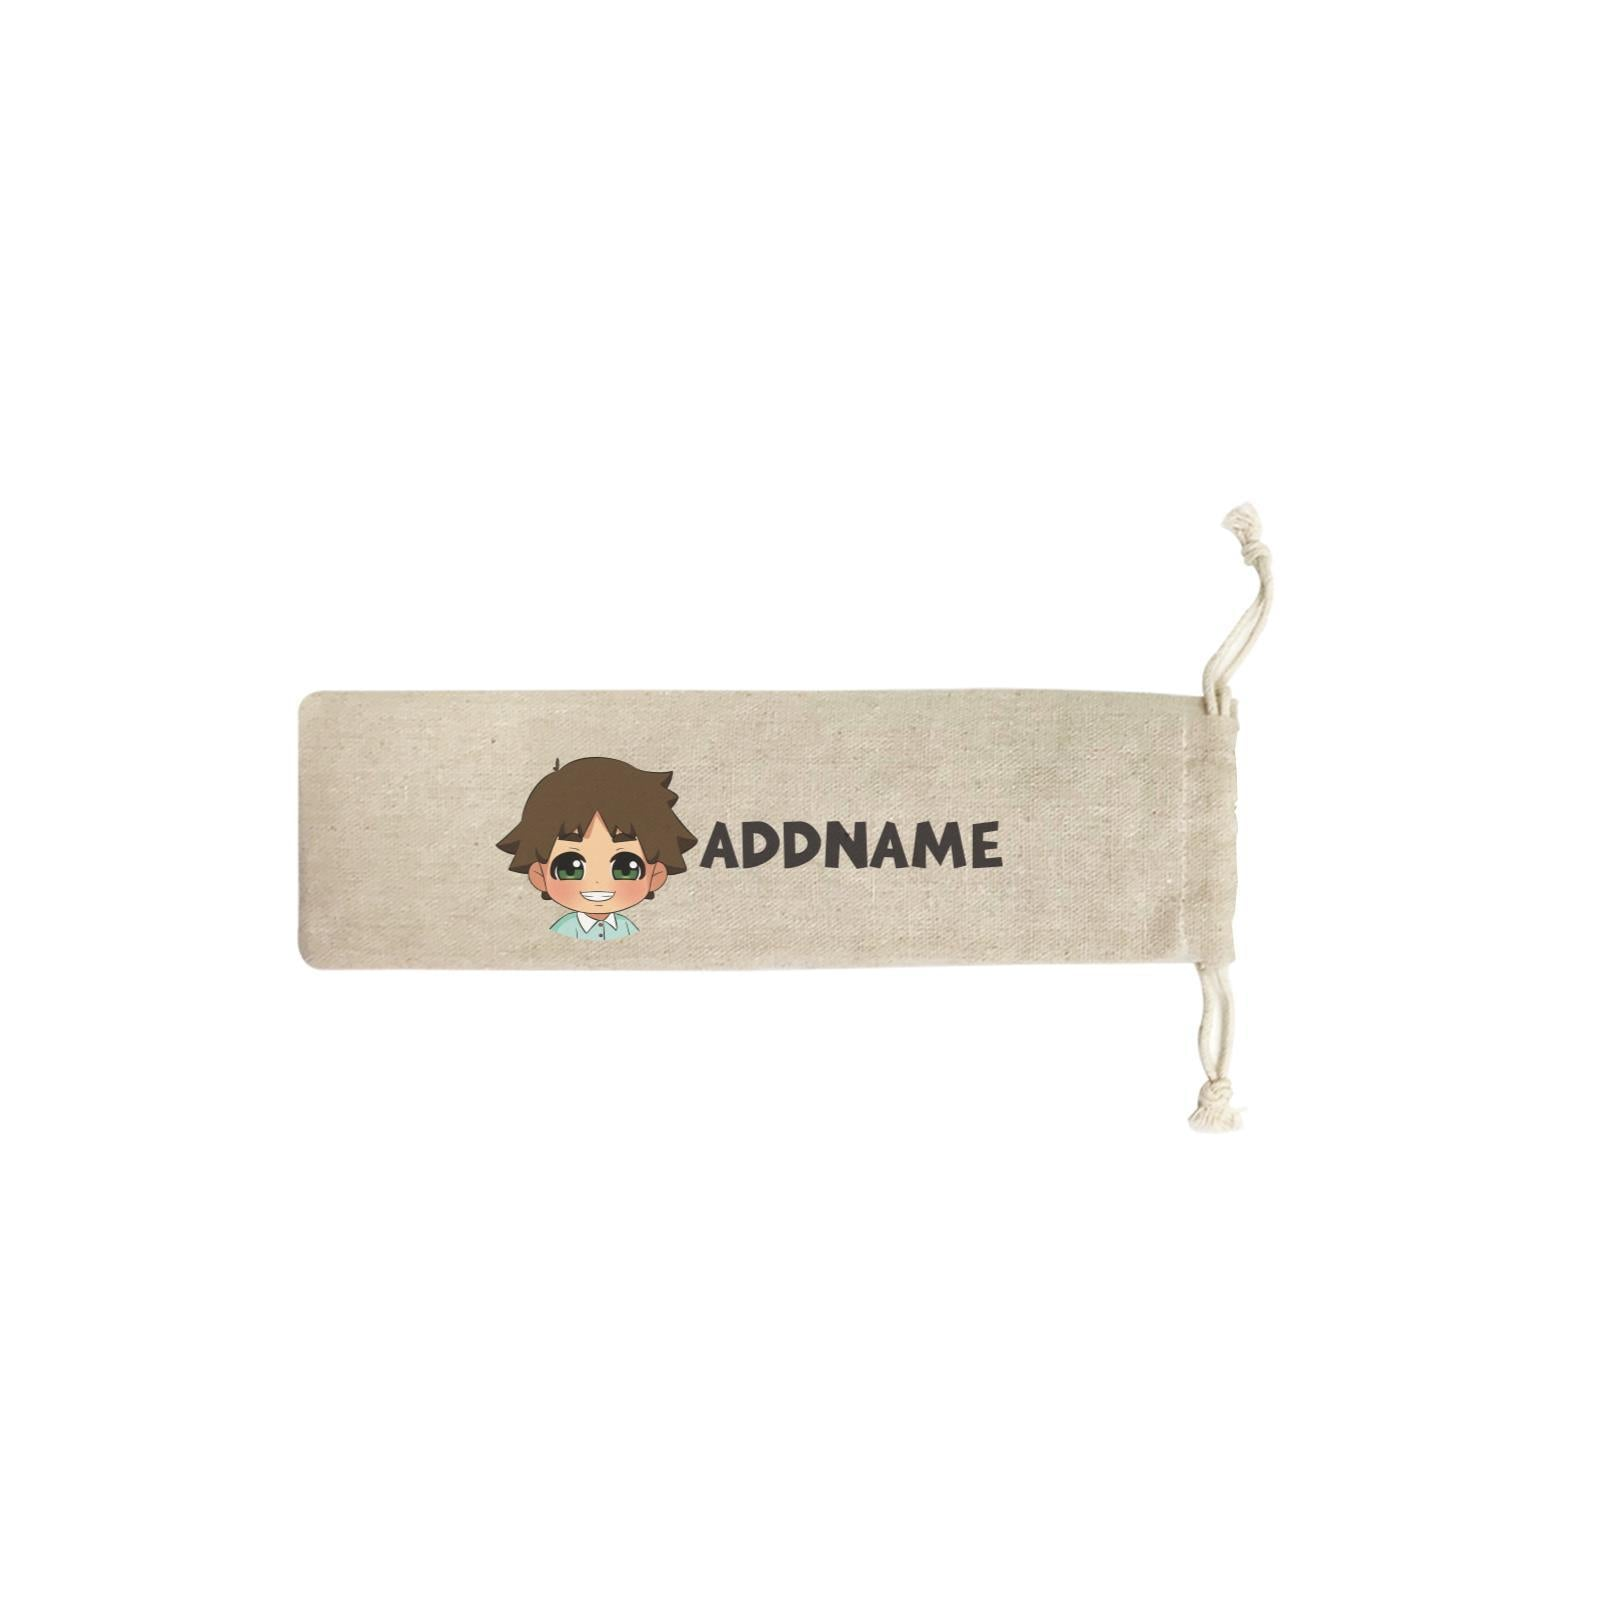 Children's Day Gift Series Little Boy Addname SB Straw Pouch (No Straws included)